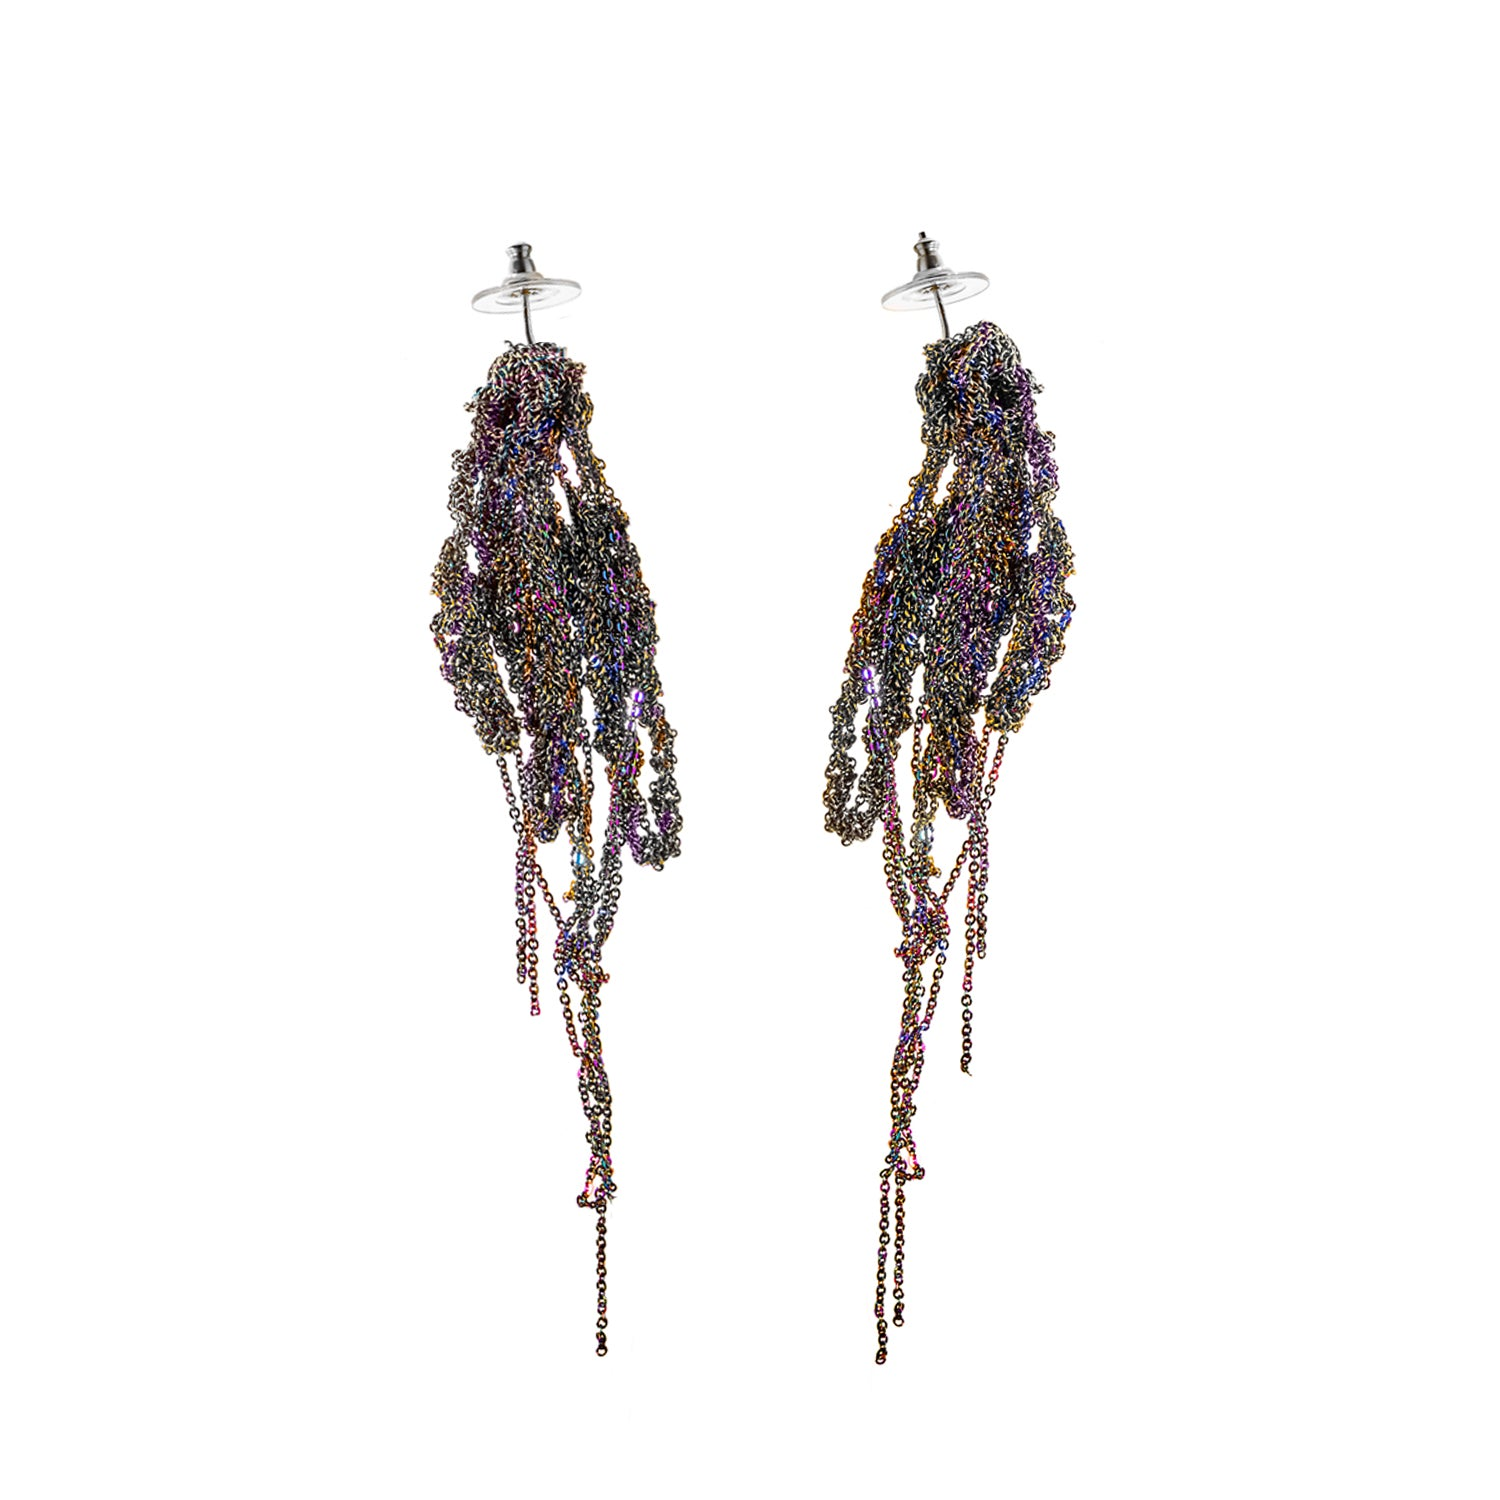 Hairy Drip Earrings in Spectrum